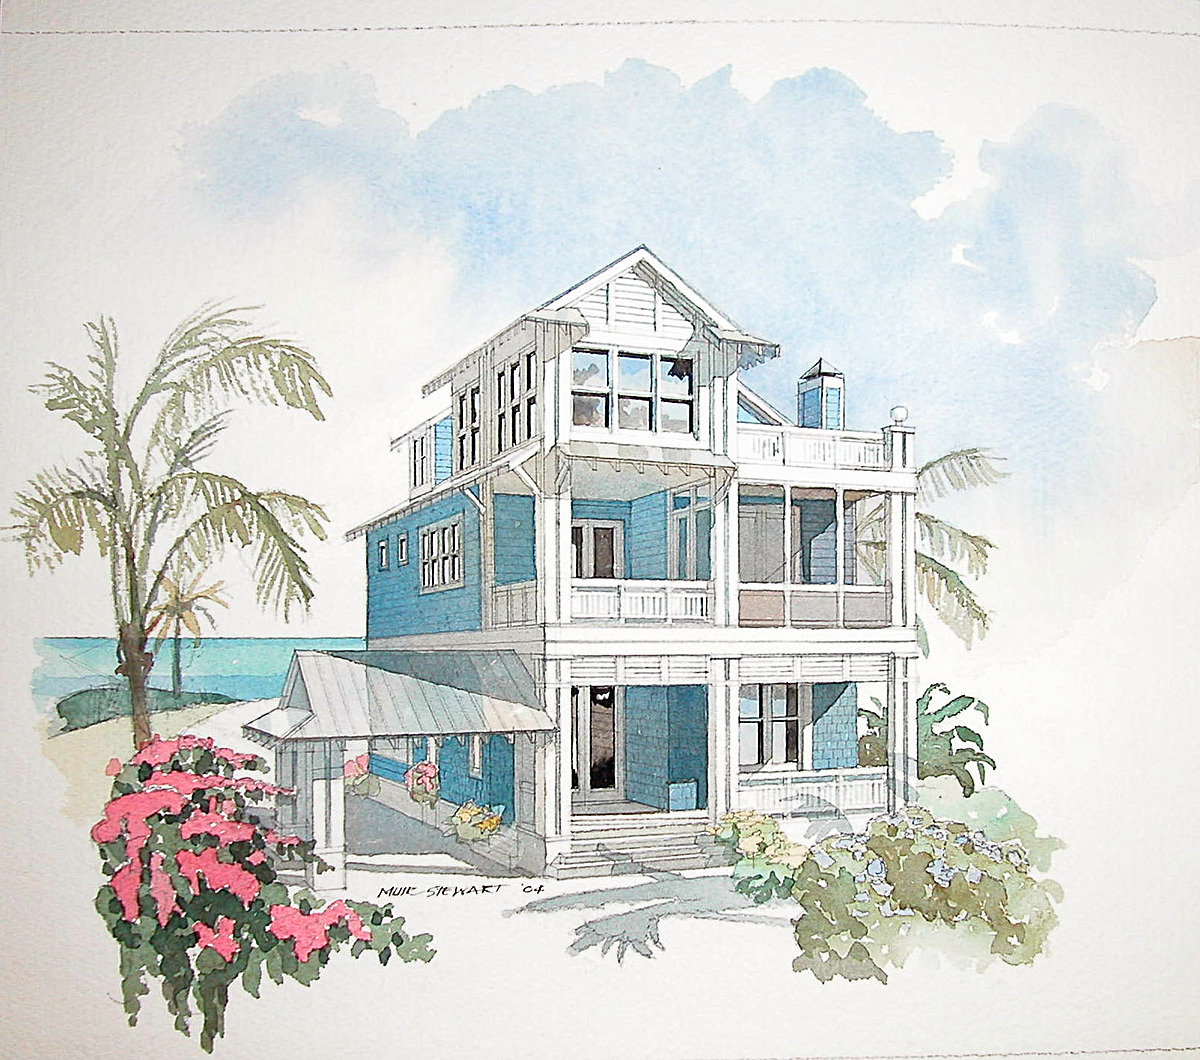 water color of family central by mur stewart - Coastal Home Design